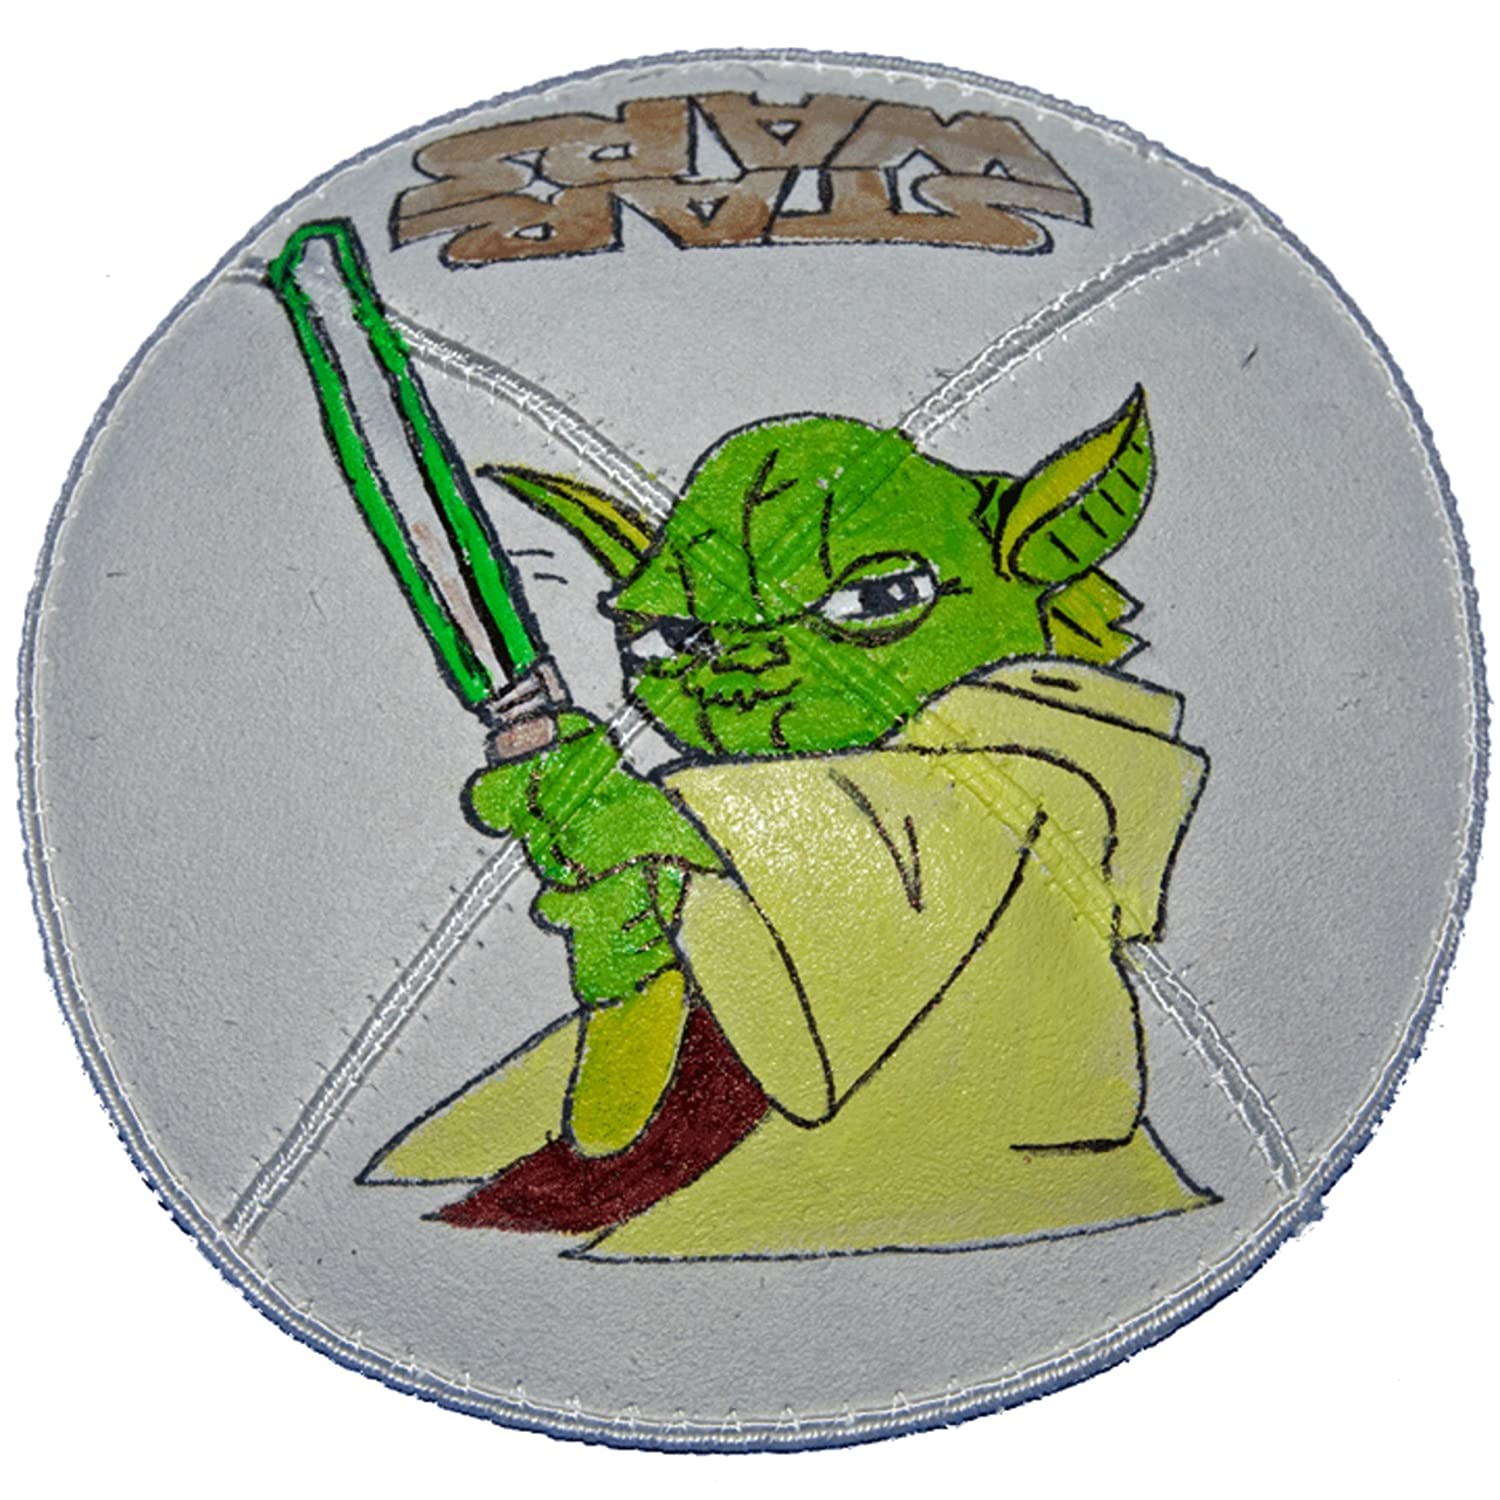 Hand-painted 67% OFF of fixed price Kippah Department store Yarmulke with Yoda